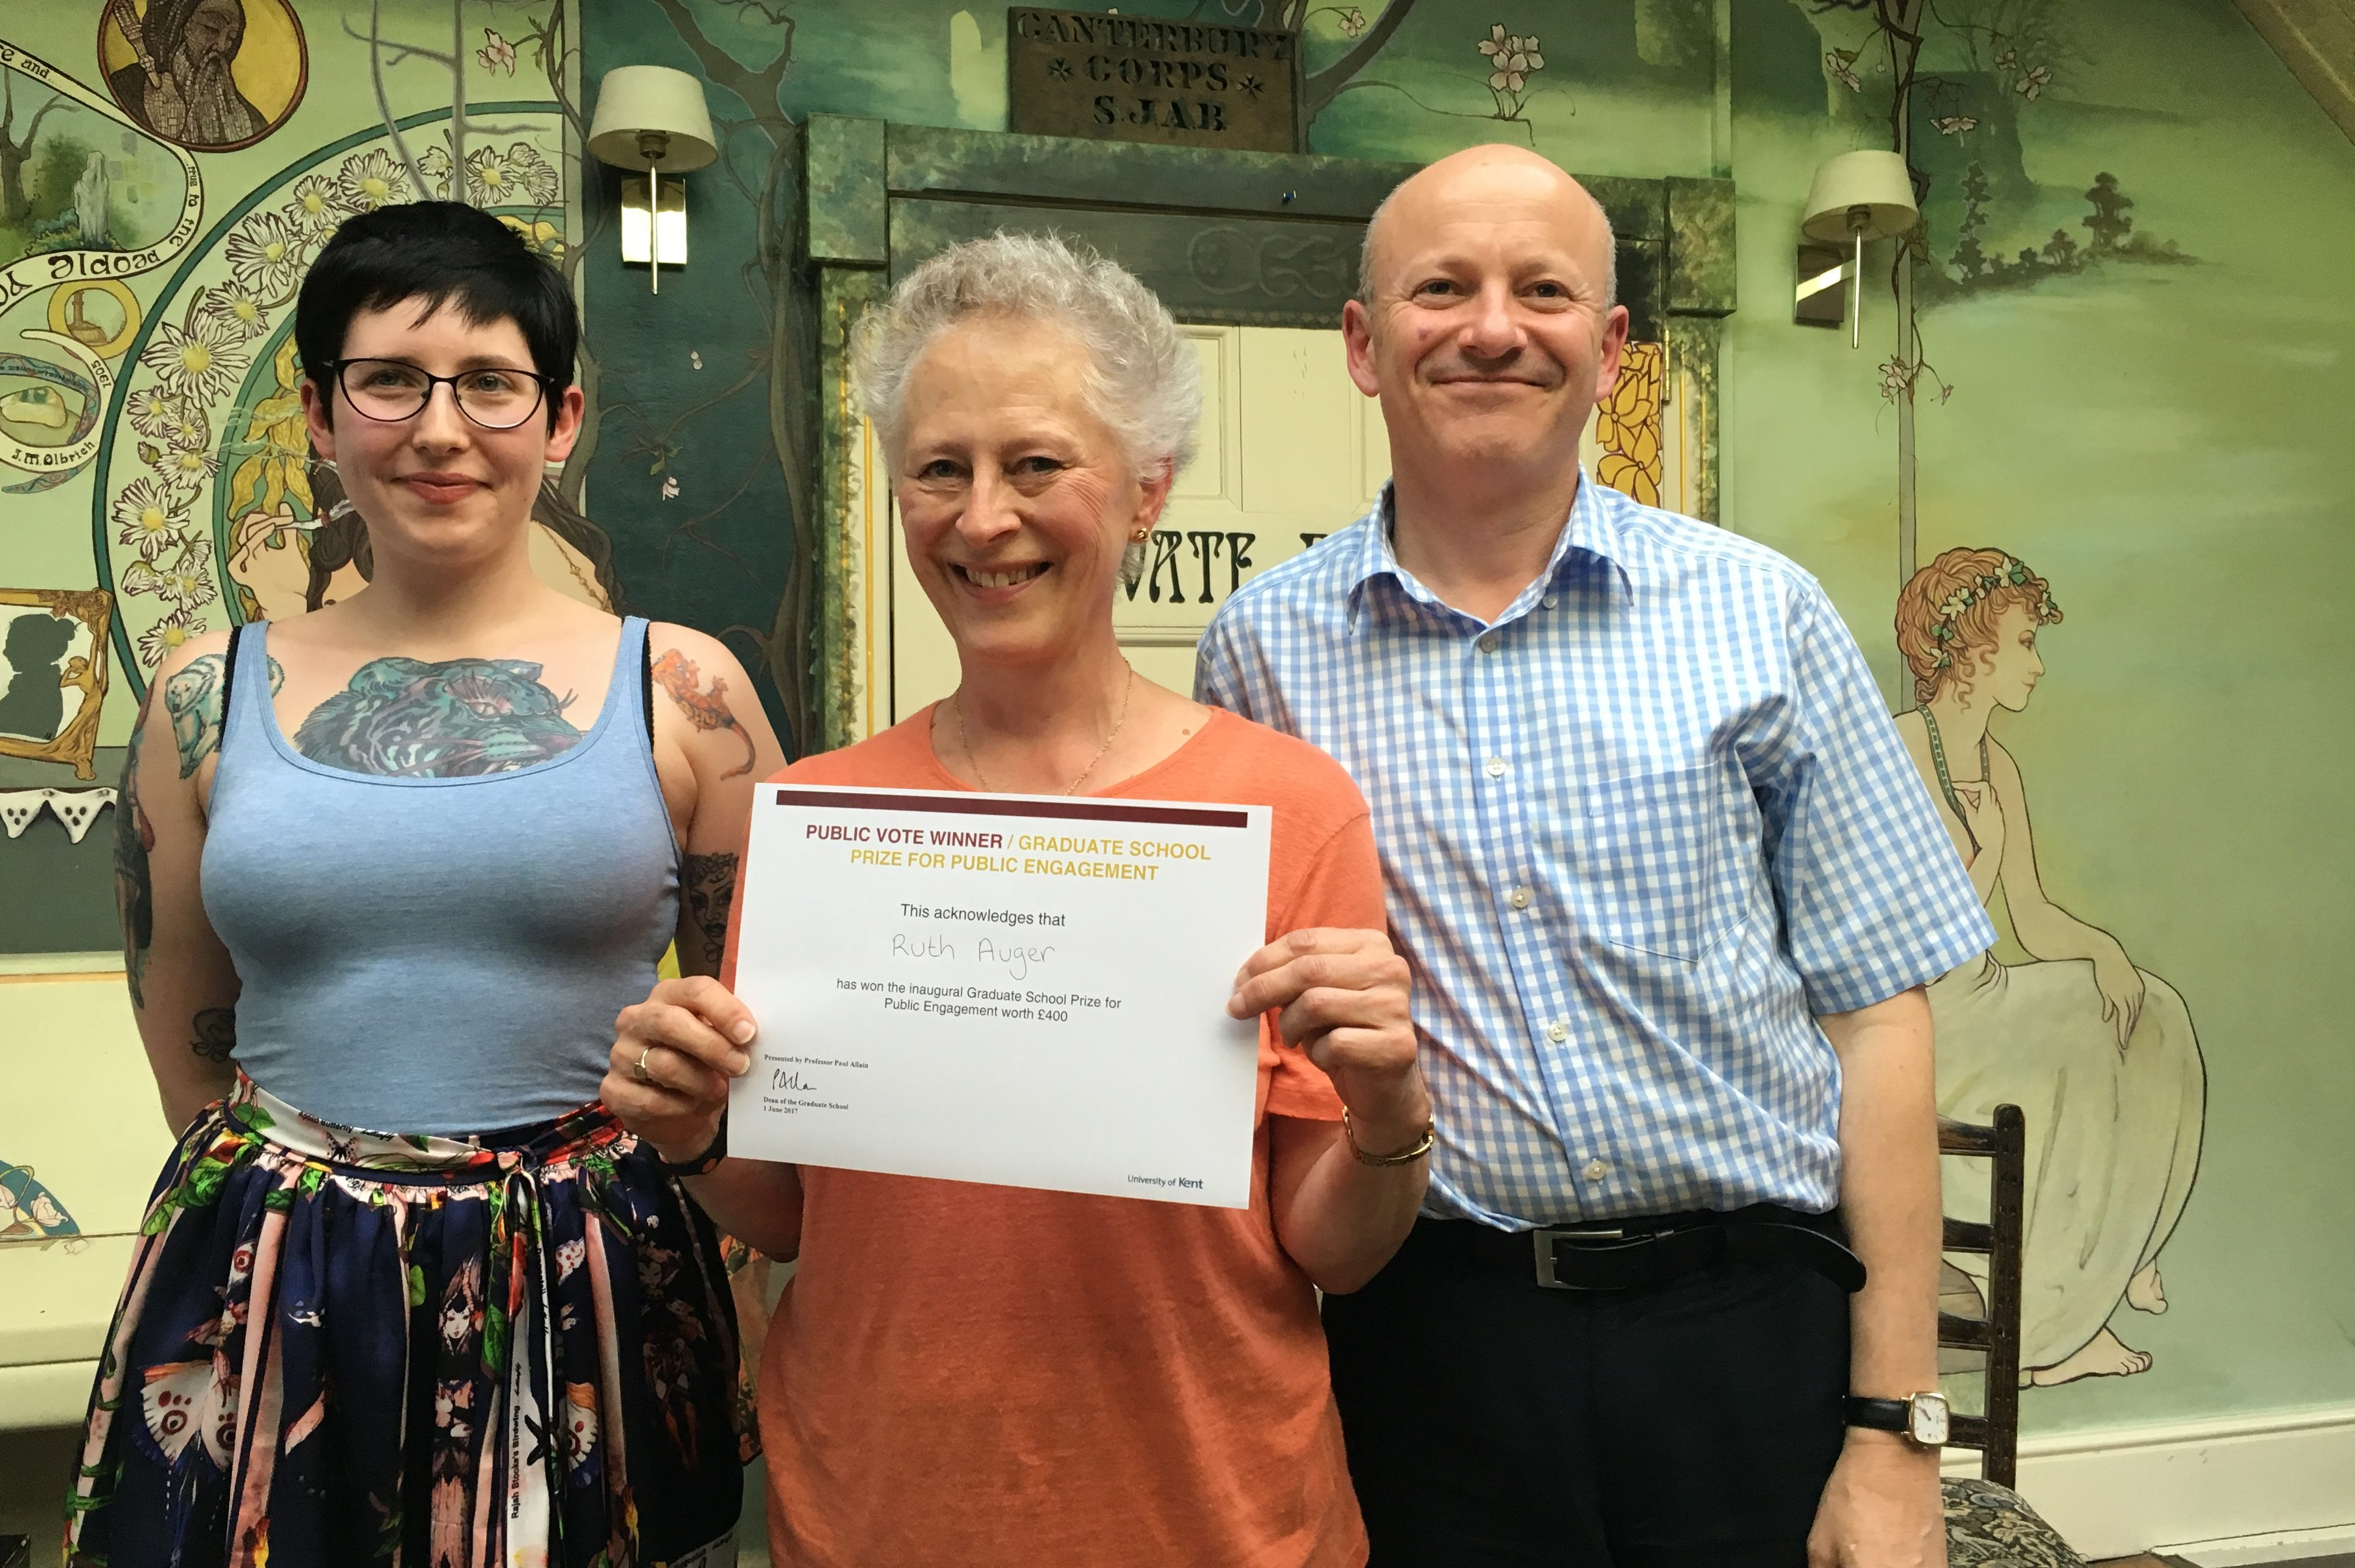 Ruth Auger wins the inaugural Graduate School Public Engagement competition